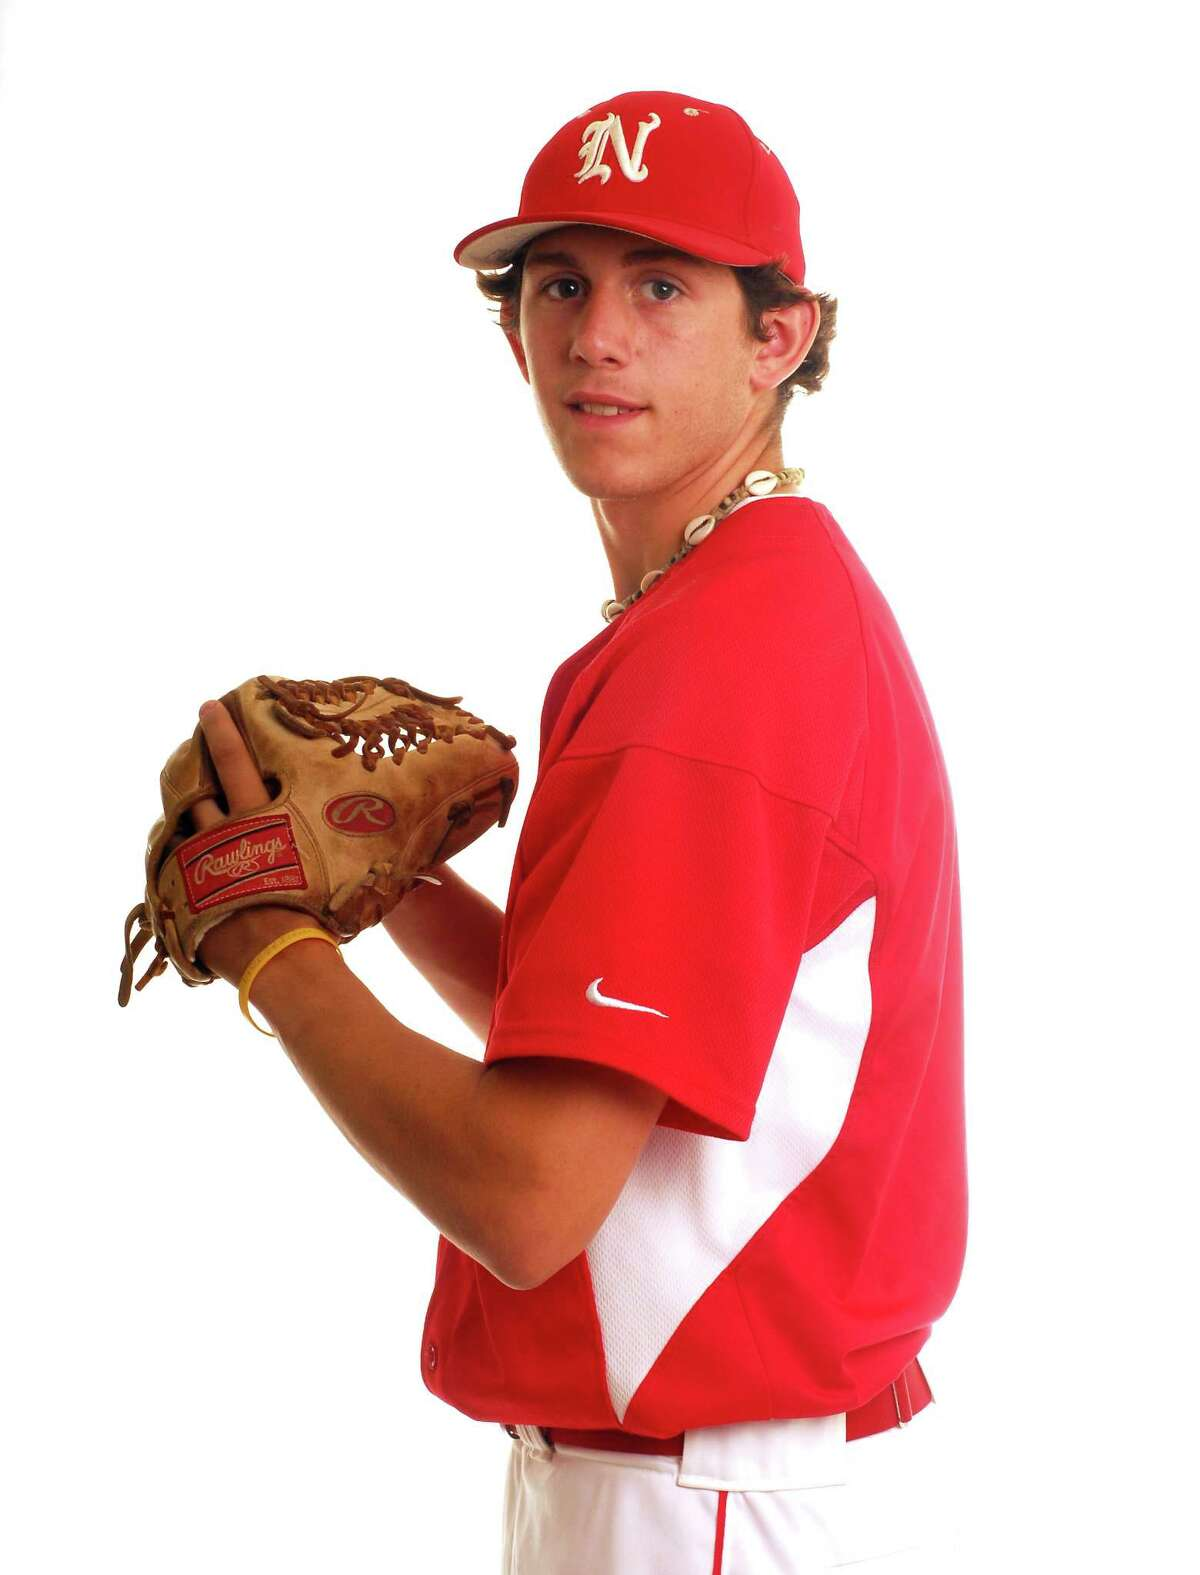 Photography by PETER HVIZDAK ph1079 # STUDIO, Connecticut- ALL-AREA BASEBALL: Dominic Leone, NFA, Norwich Free Academy